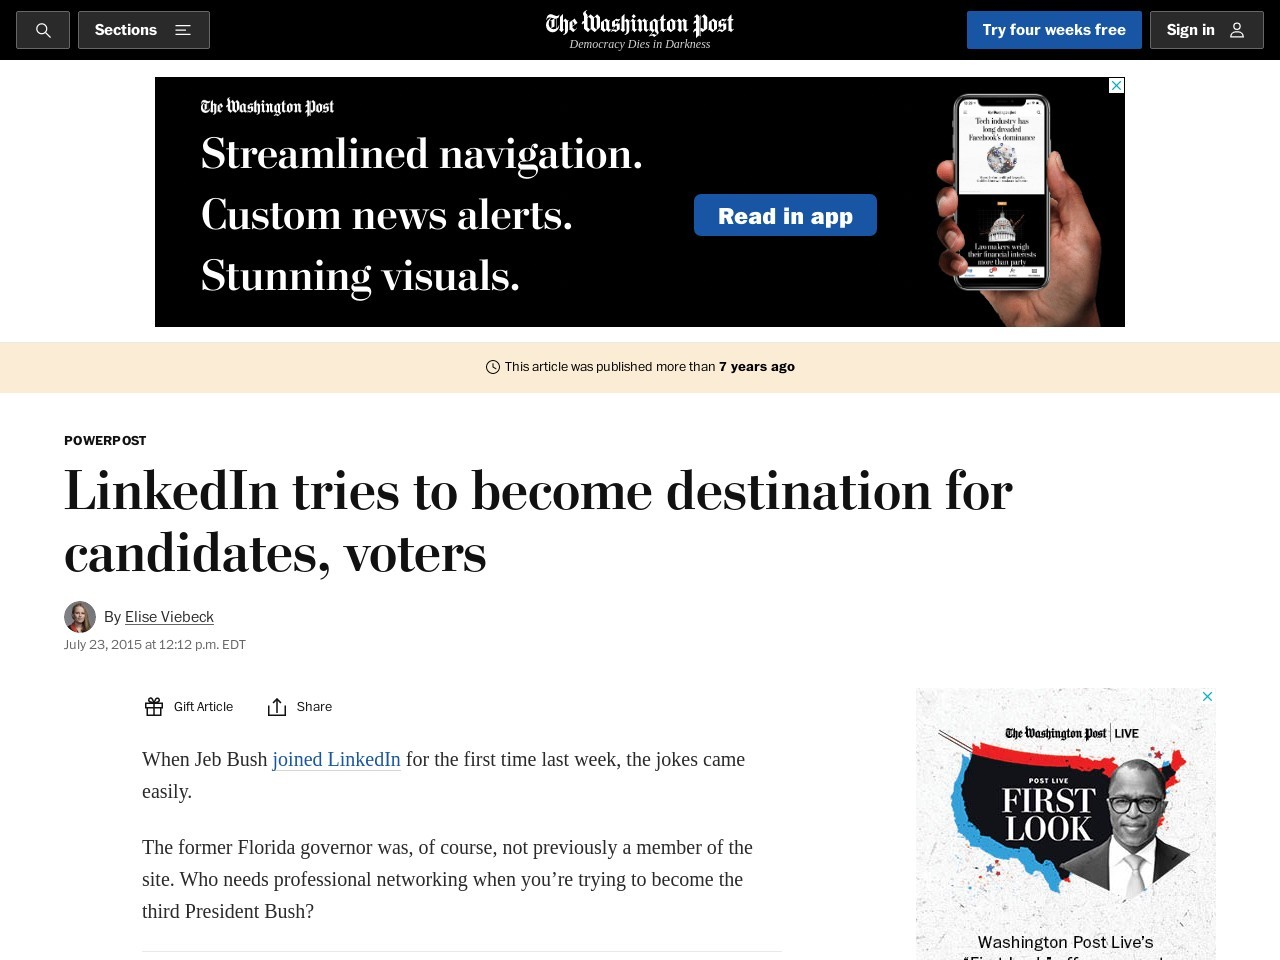 LinkedIn tries to become destination for candidates, voters – The Washington Post